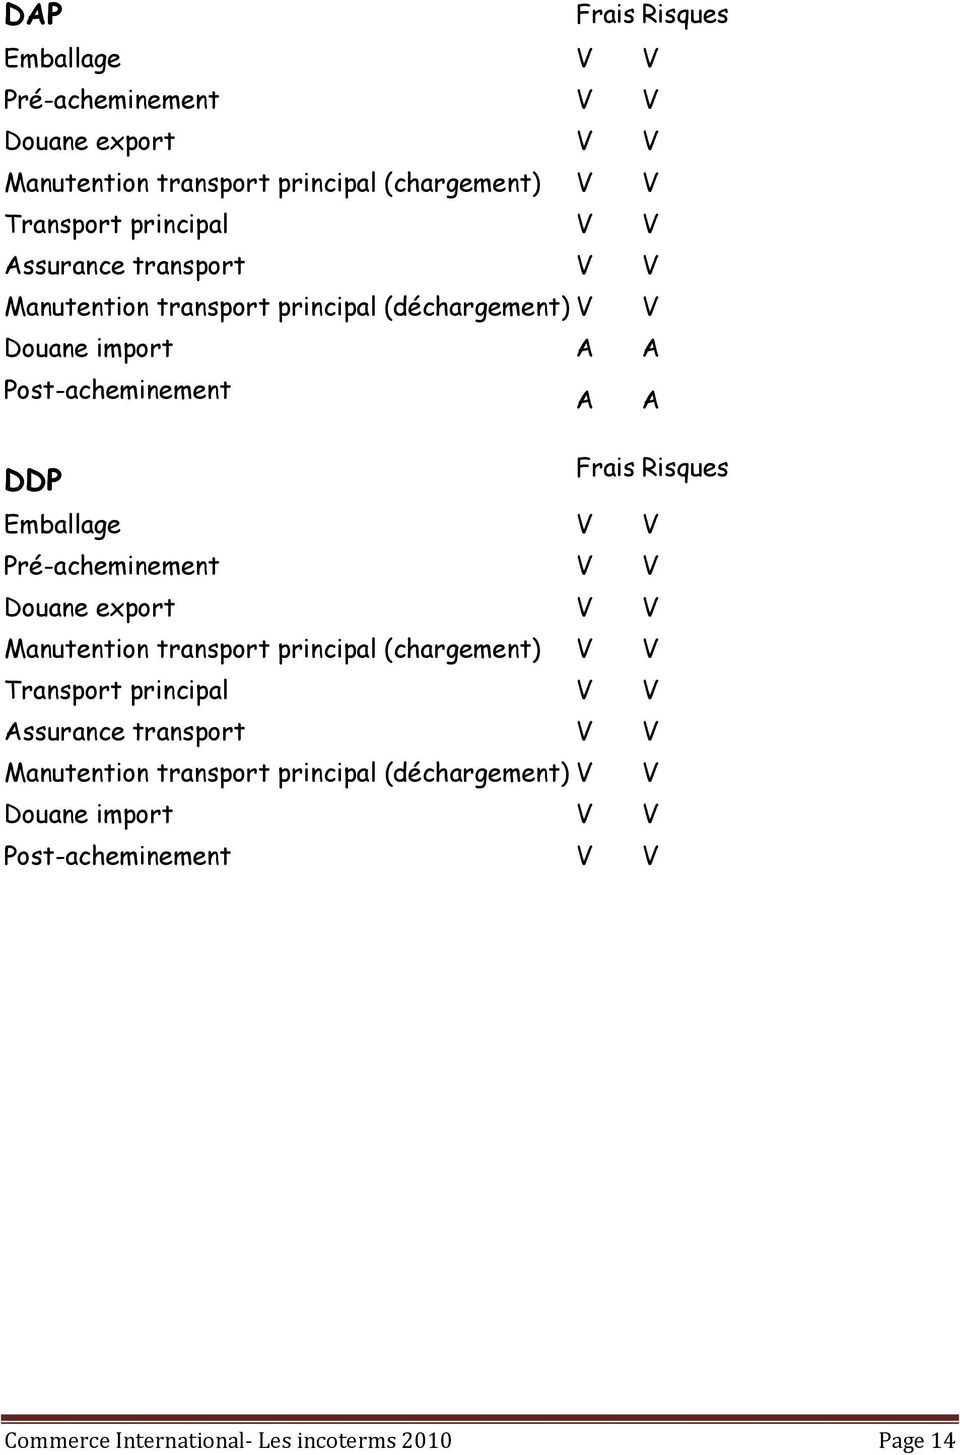 principal (chargement) V V Transport principal V V Assurance transport V V Manutention transport